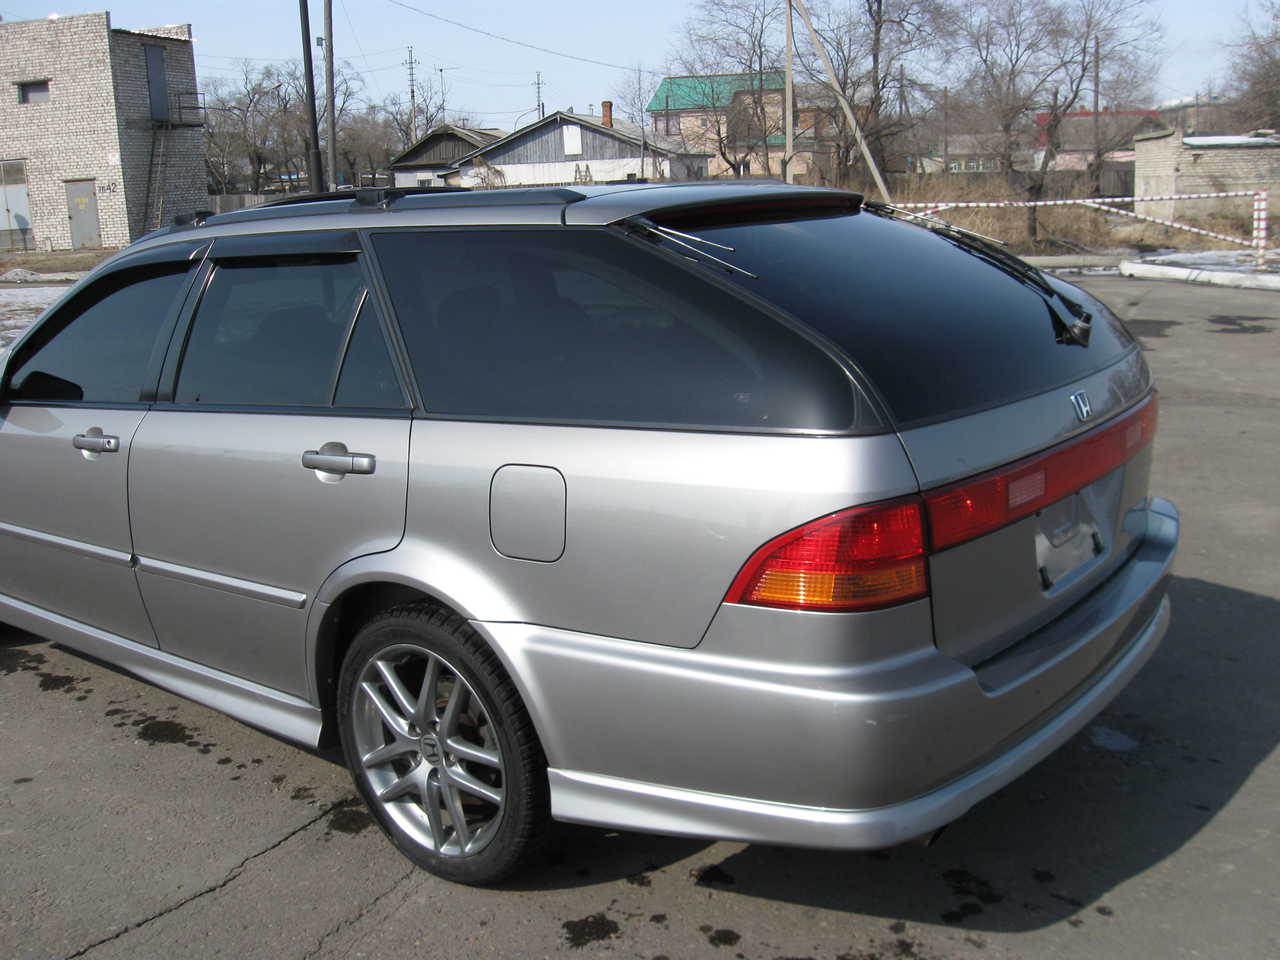 2000 honda accord wagon for sale 2 3 gasoline ff automatic for sale. Black Bedroom Furniture Sets. Home Design Ideas